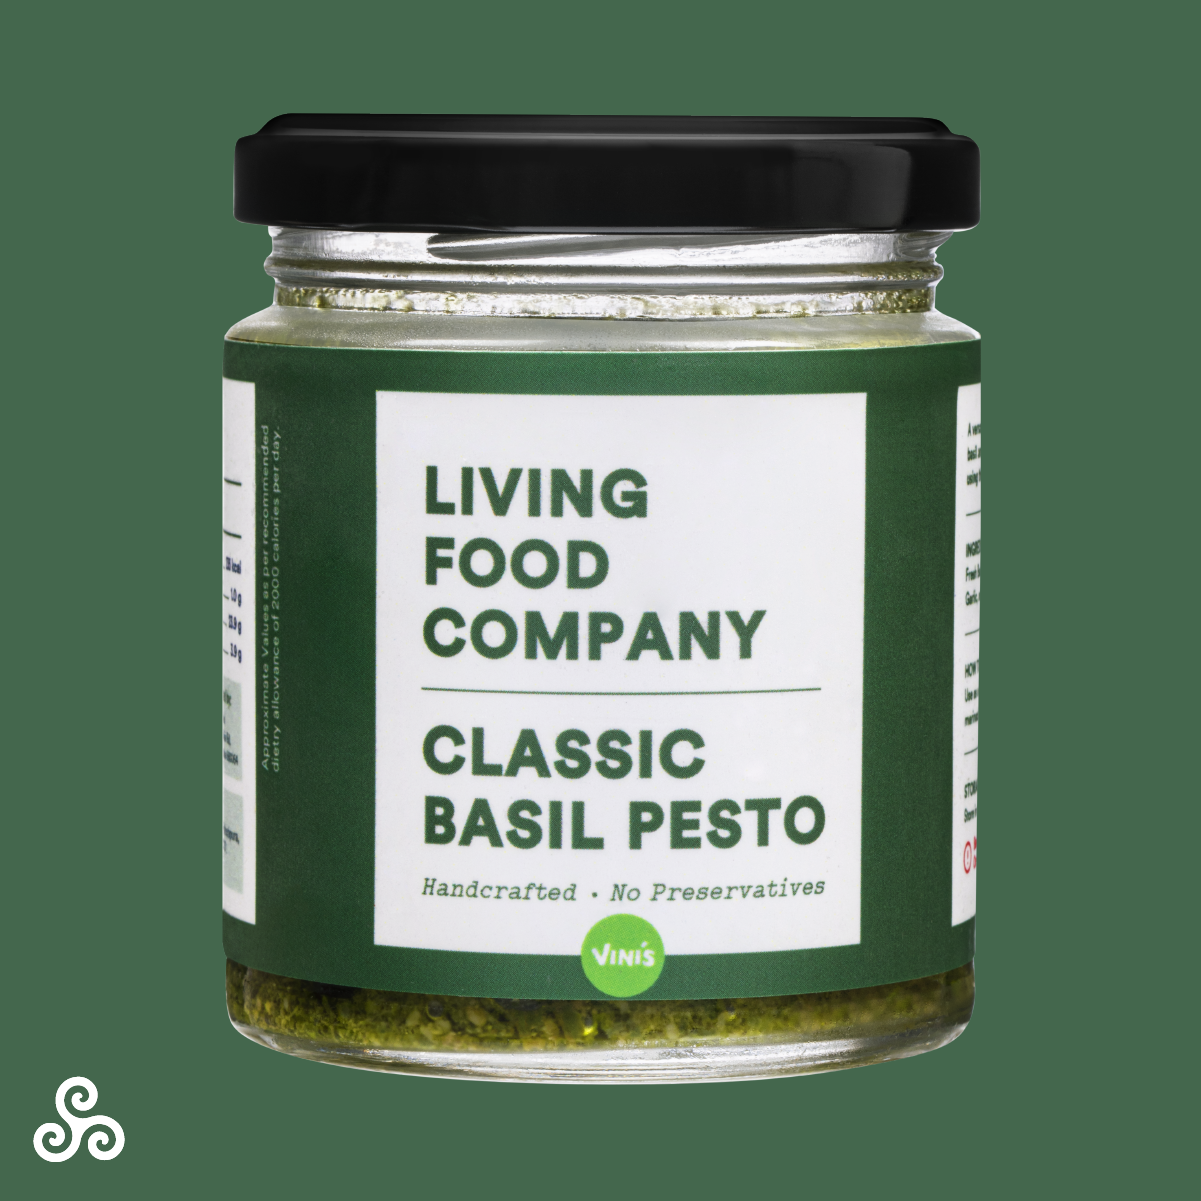 A premium handcrafted Pesto with fresh Basil, Pine nuts, Parmesan cheese, blended to perfection with Extra Virgin Olive Oil.